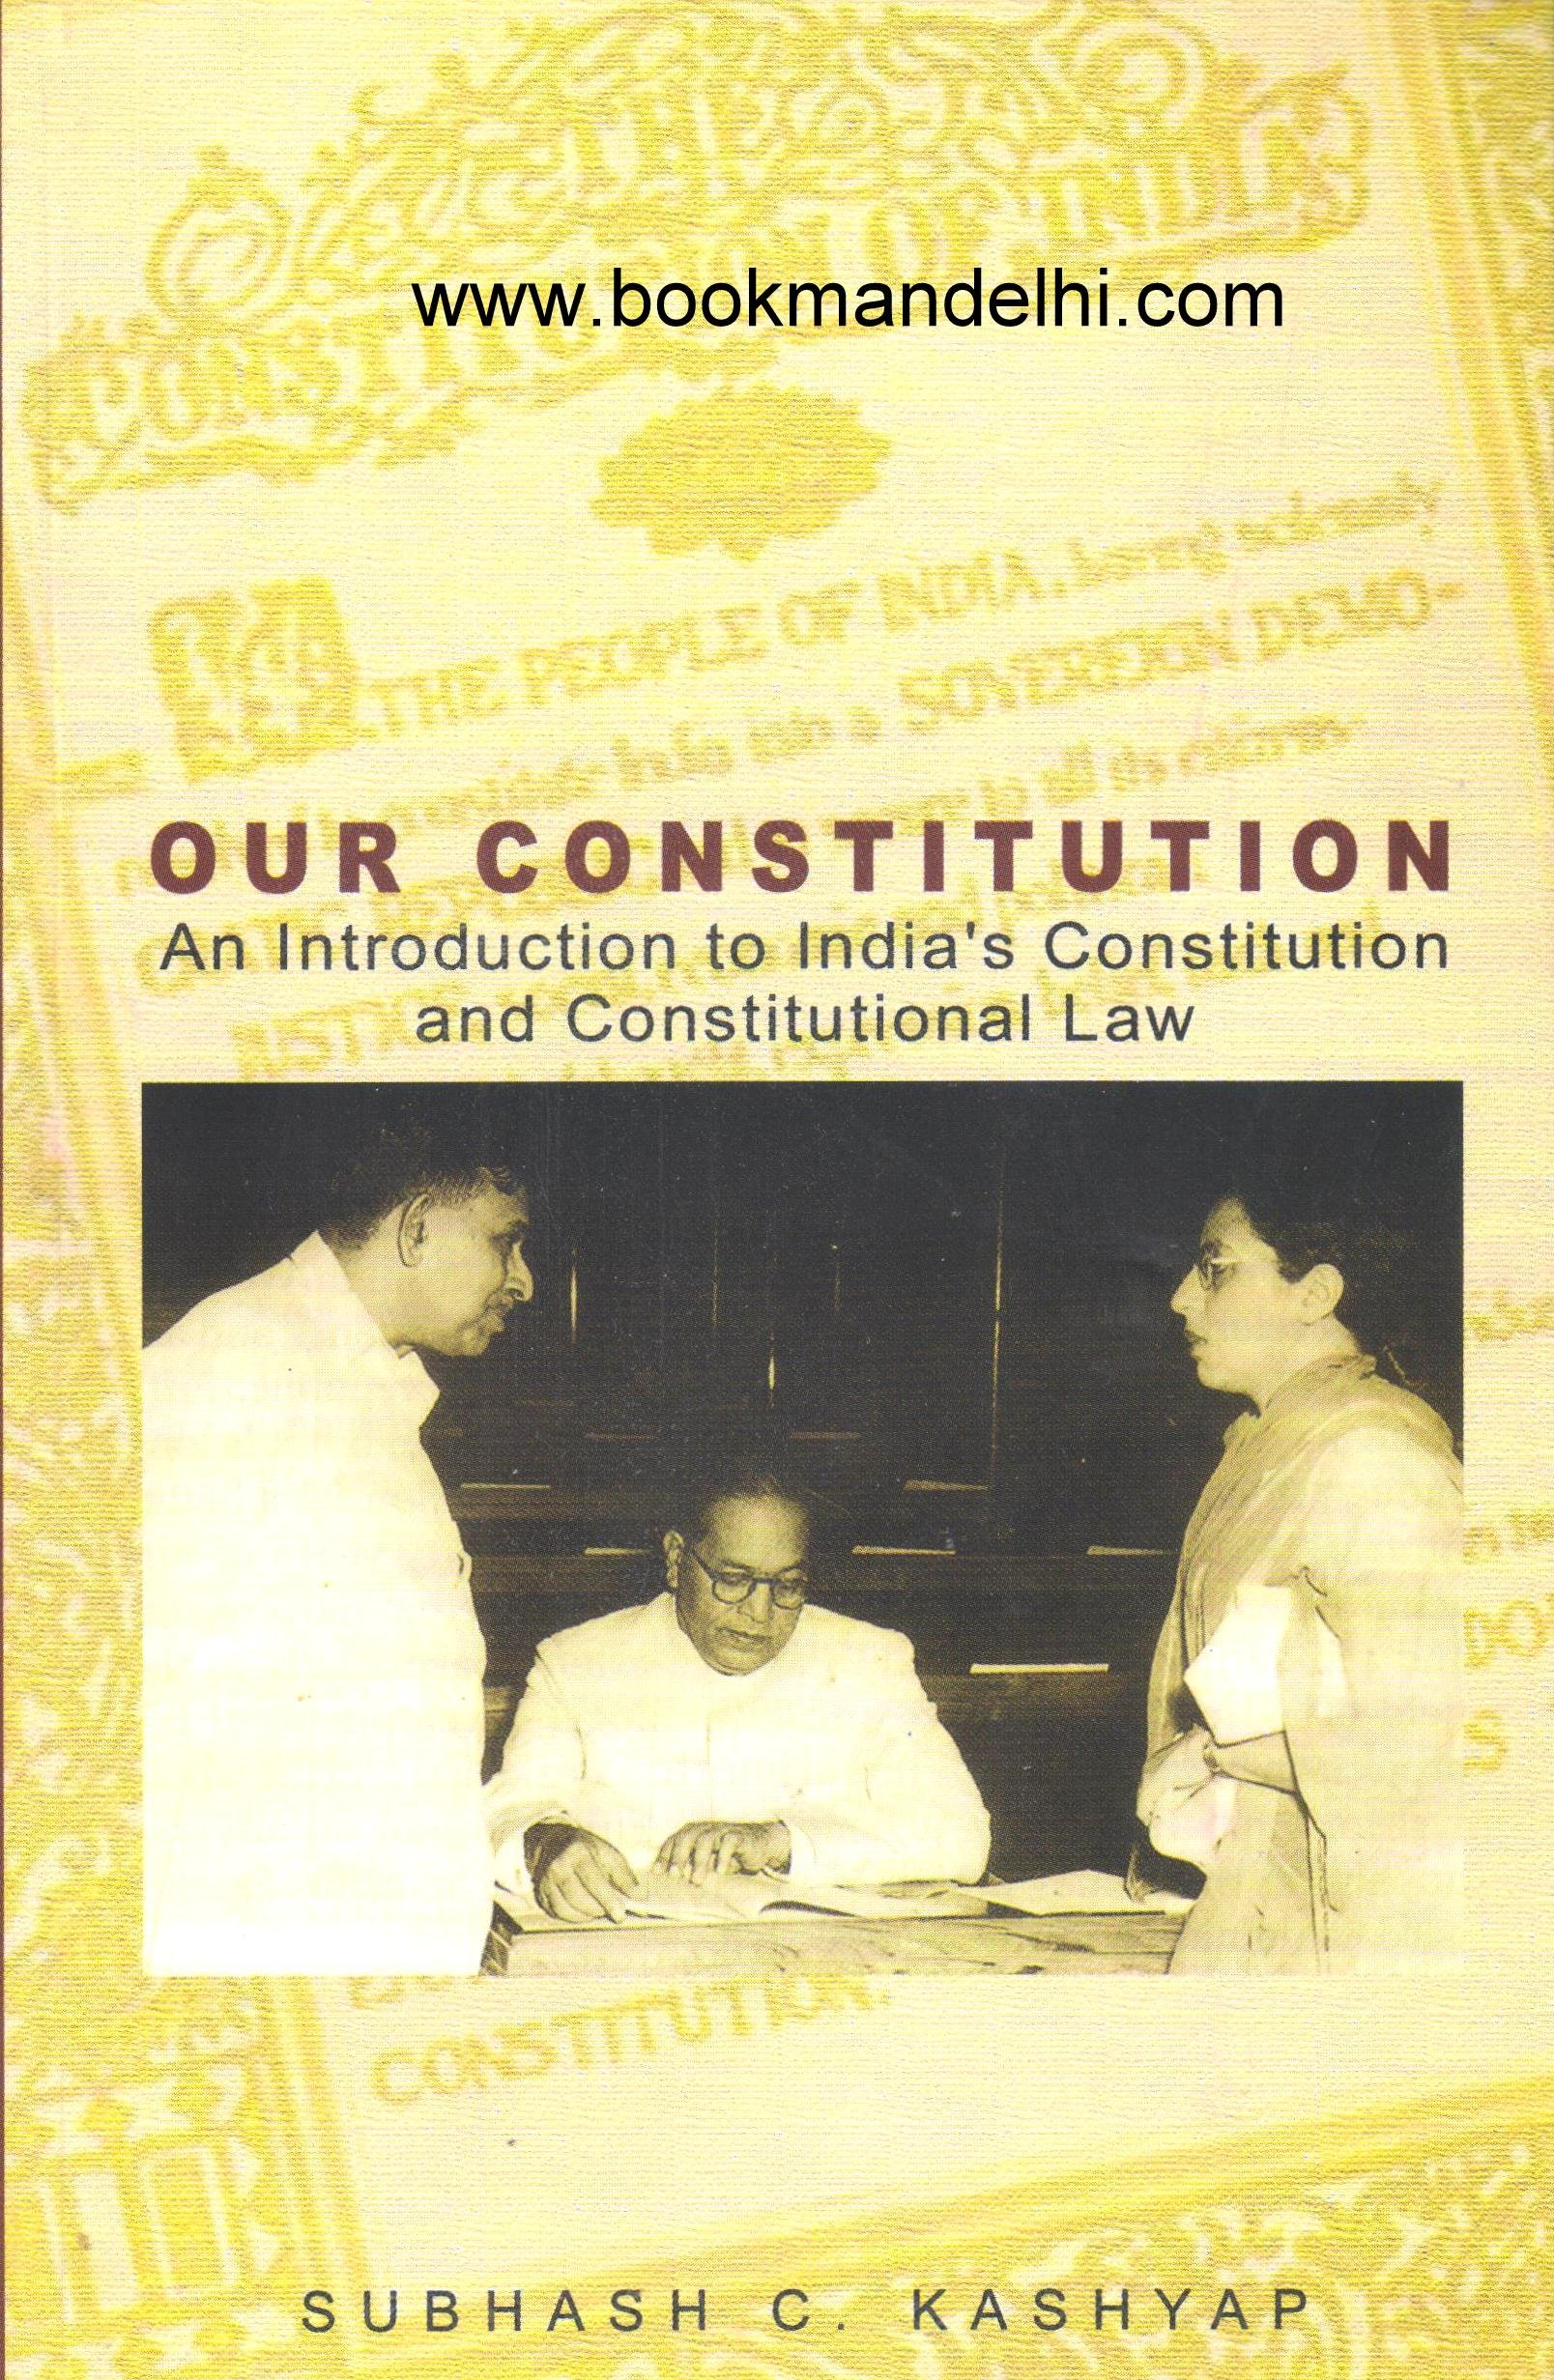 our constitution by subhash kashyap ebook